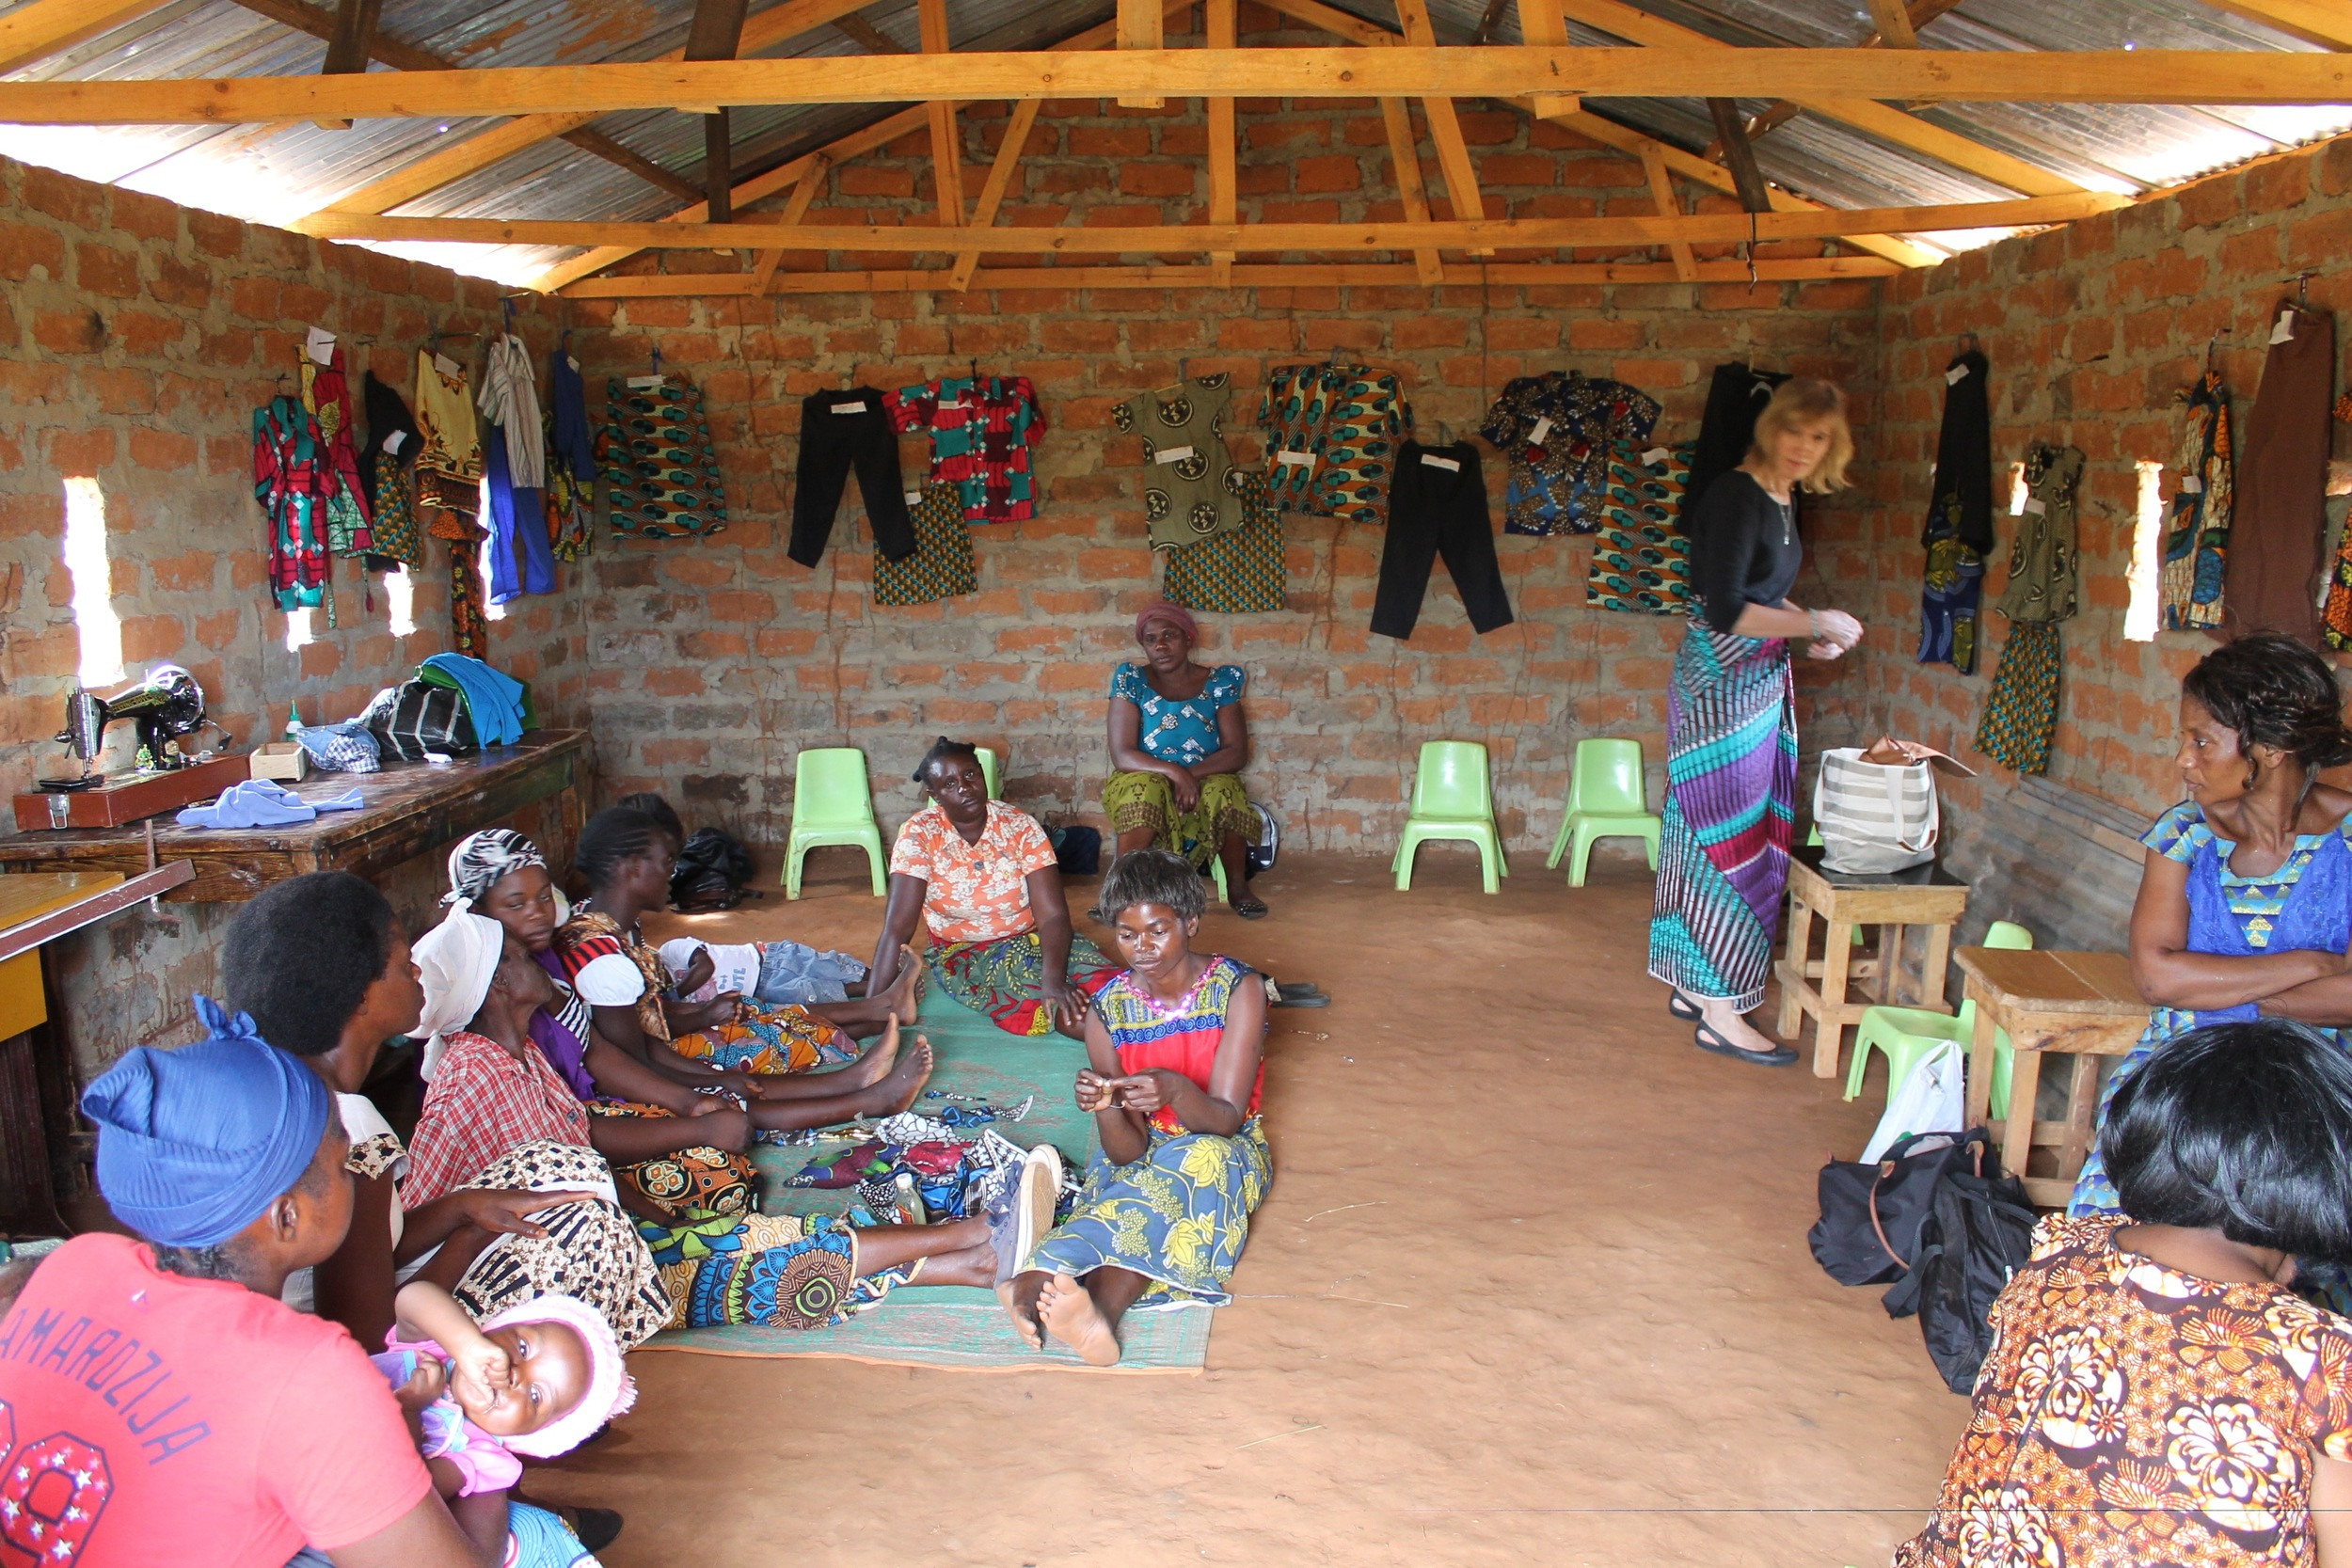 Inside, Lusaka ladies mingled with Village ladies, and we all admired the graduation test pieces adorning the walls.